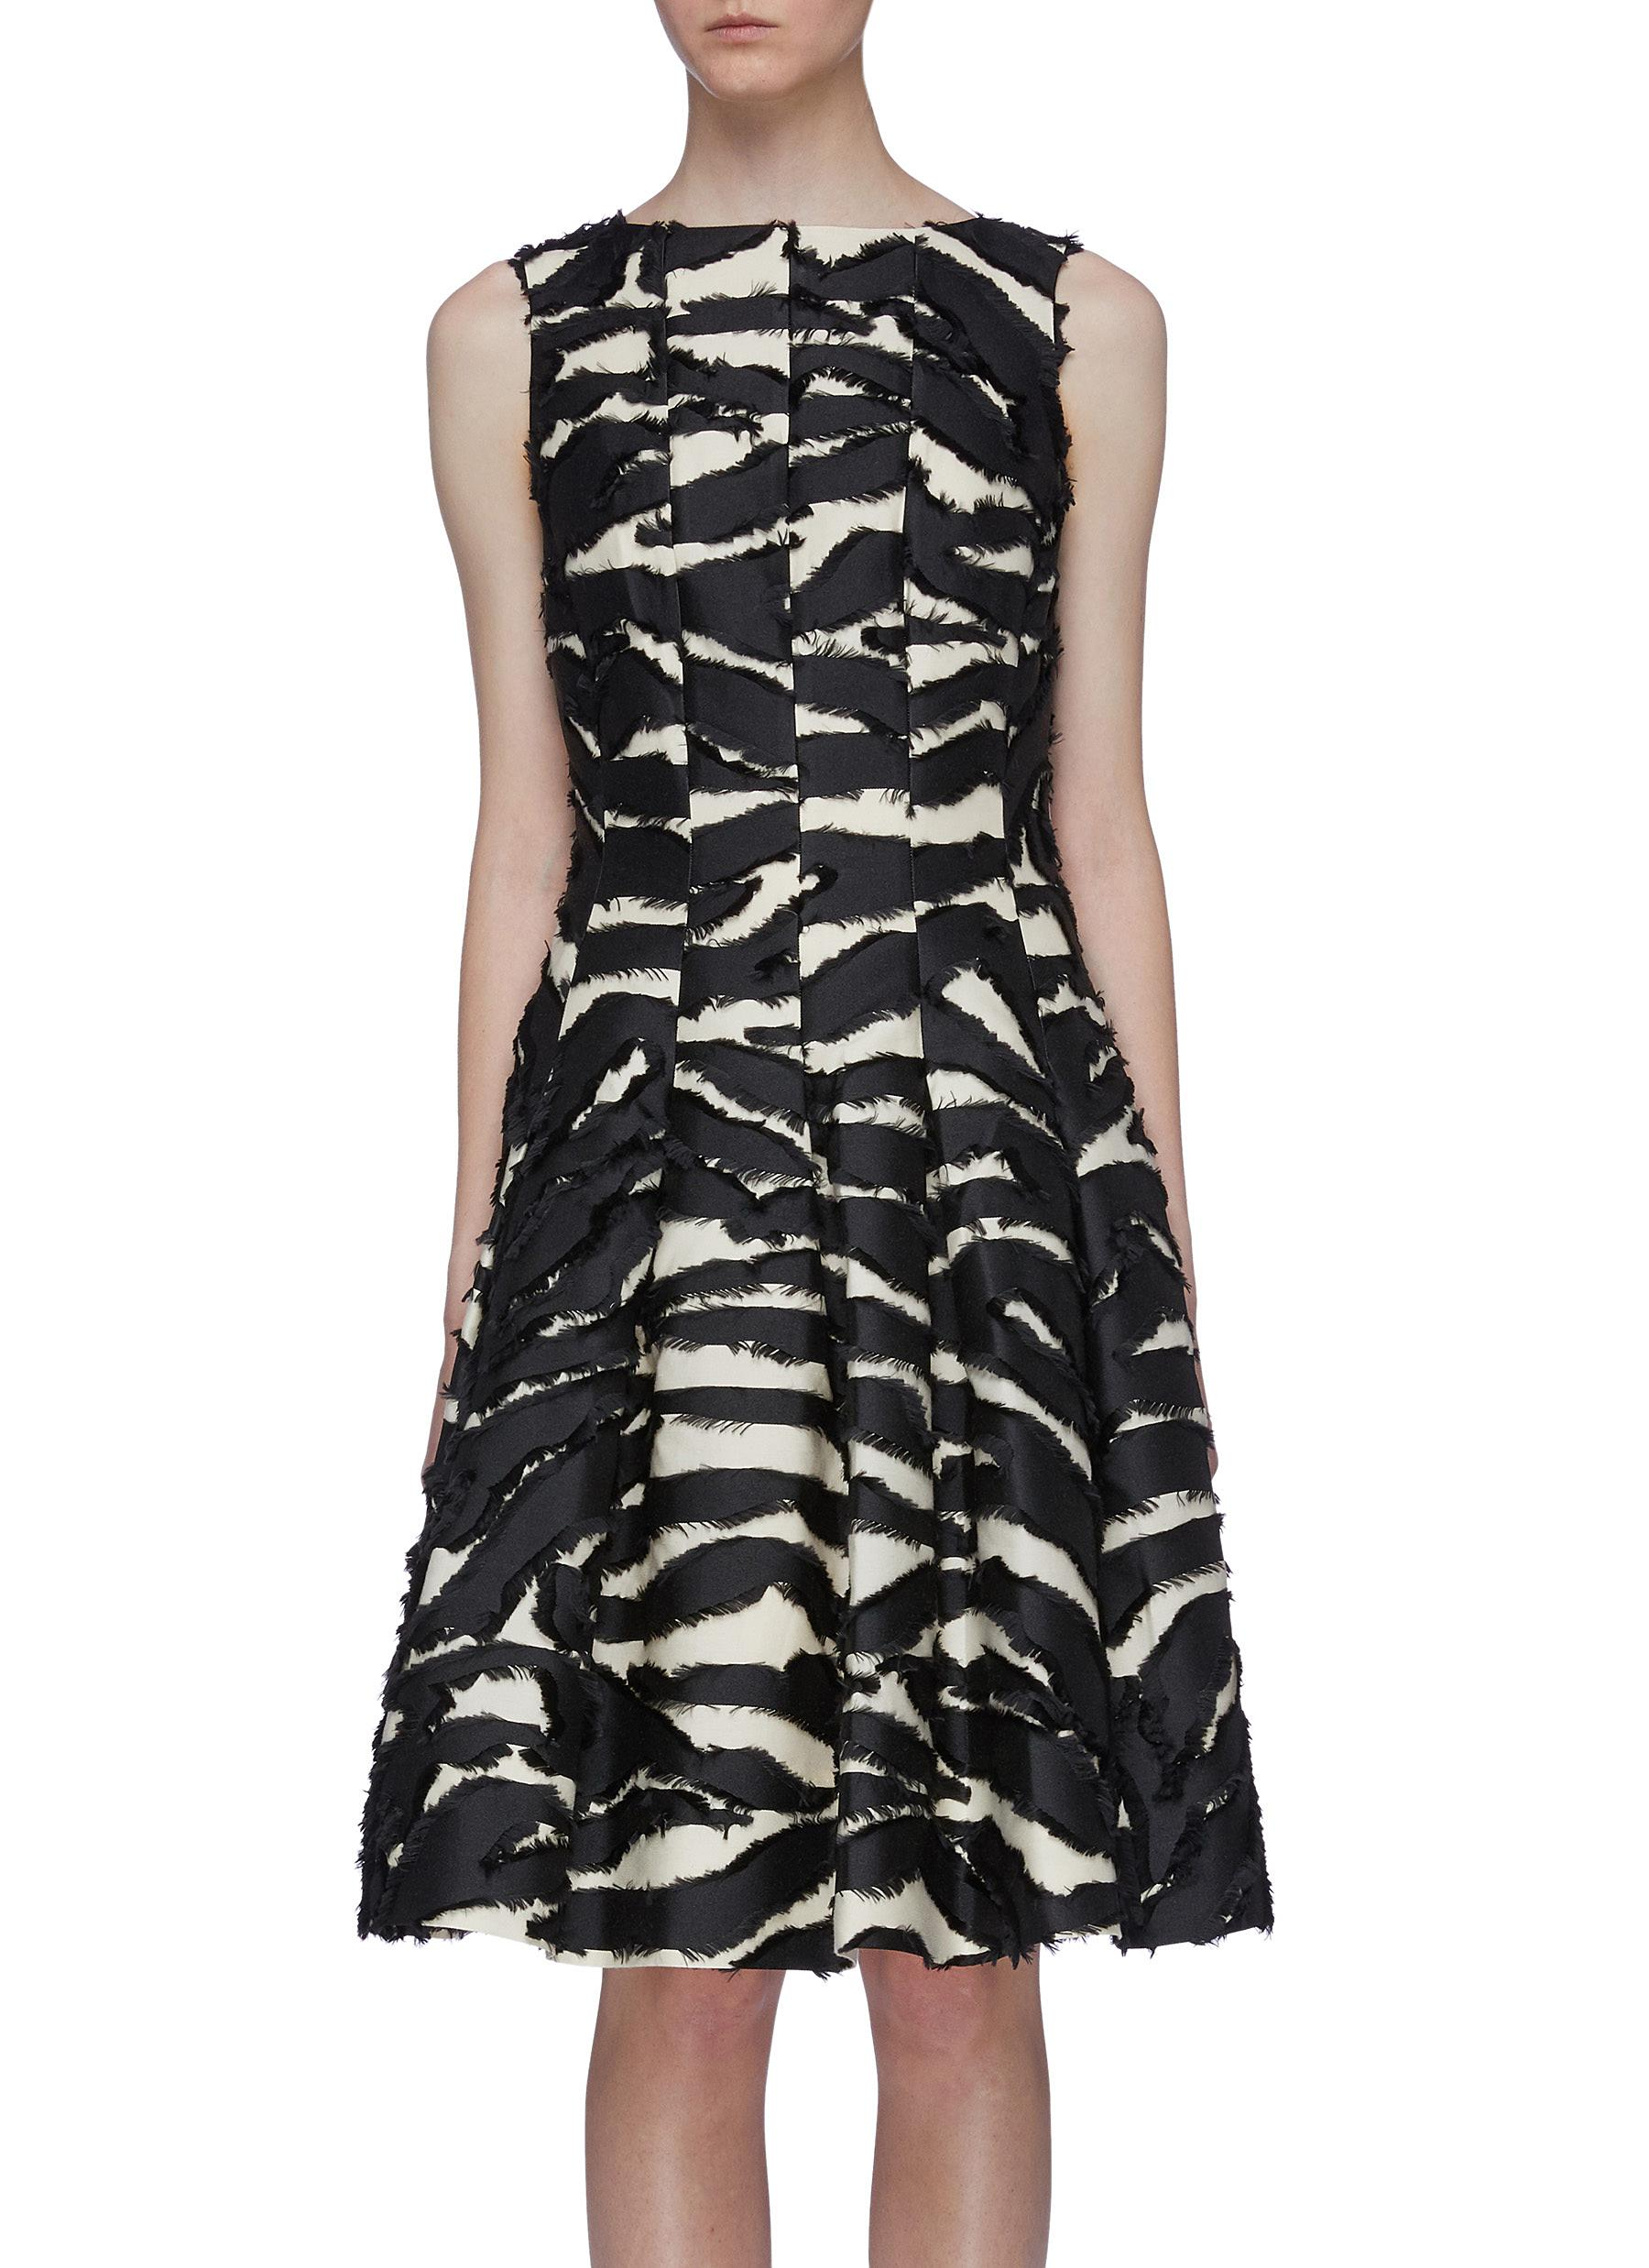 Zebra fil coupé pleated sleeveless dress by Oscar De La Renta